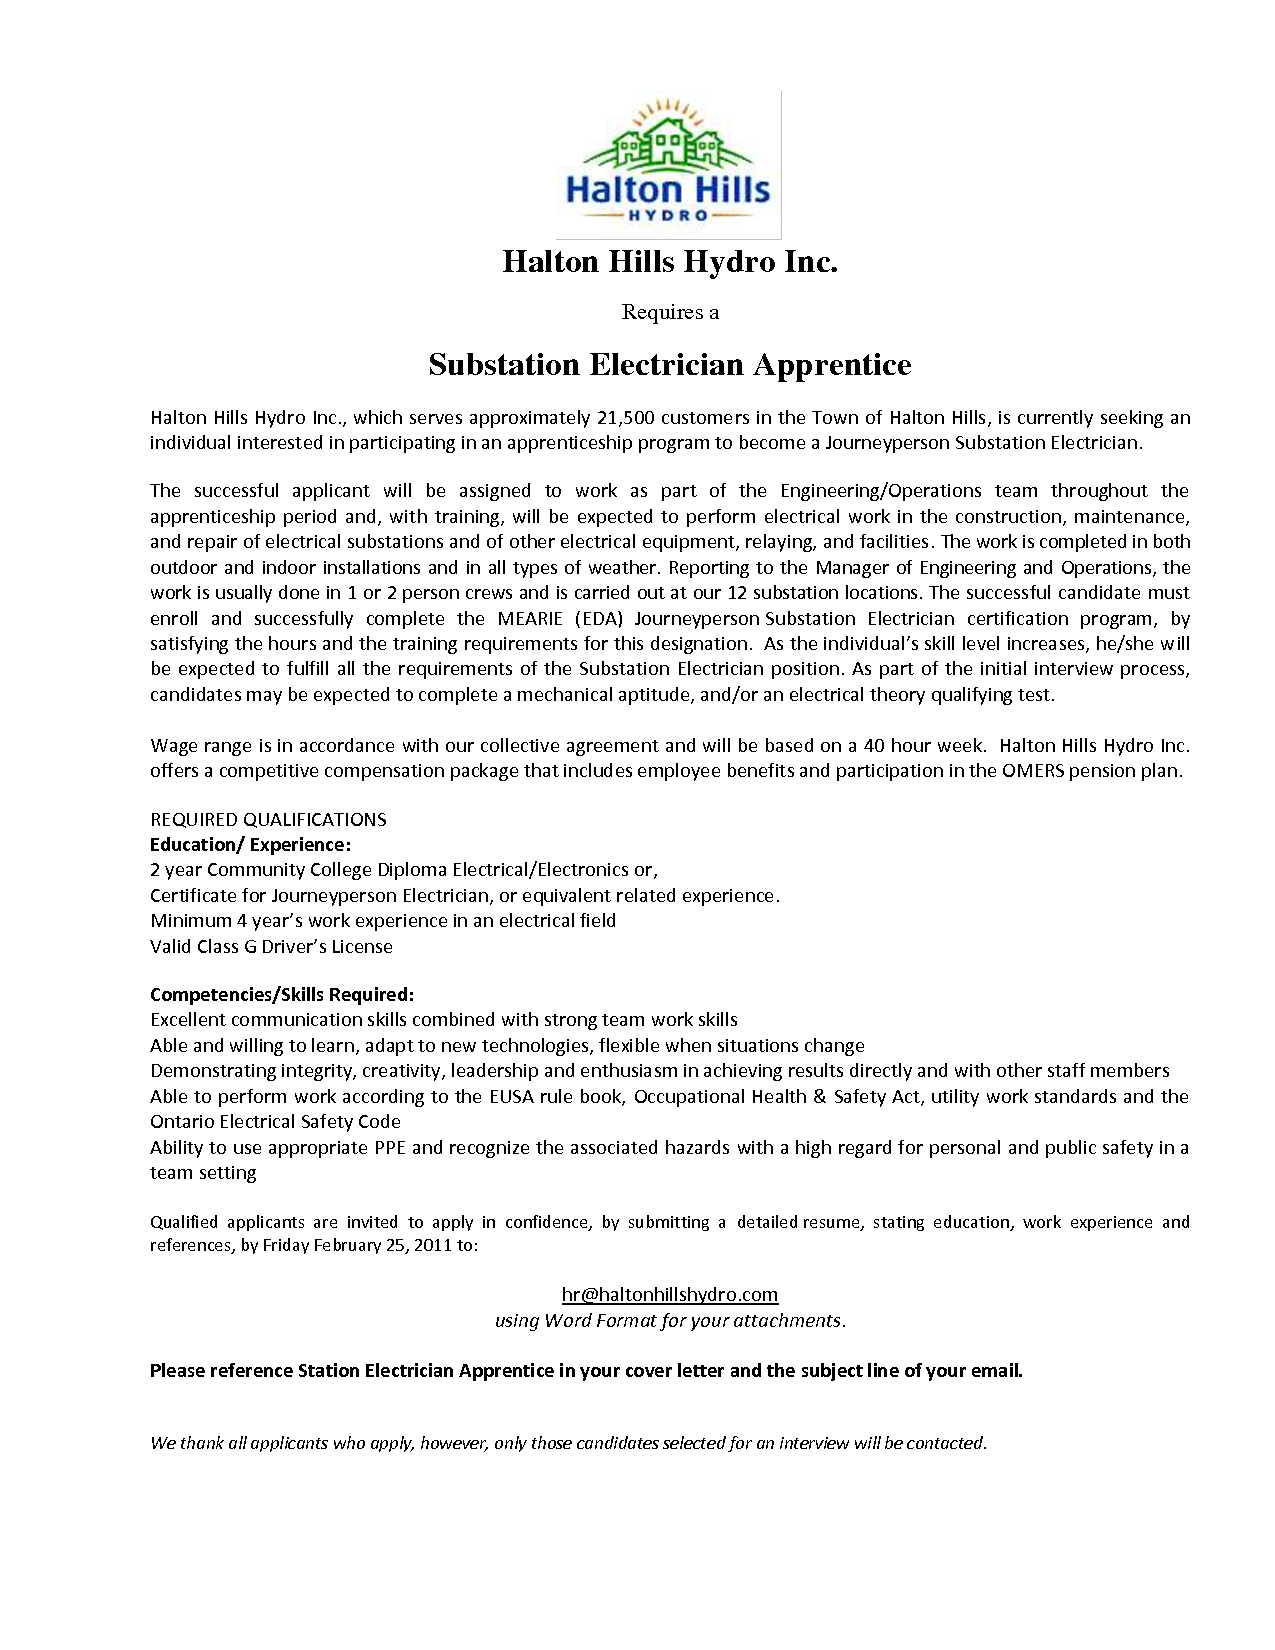 electrician apprentice cover letter - Sazak.mouldings.co